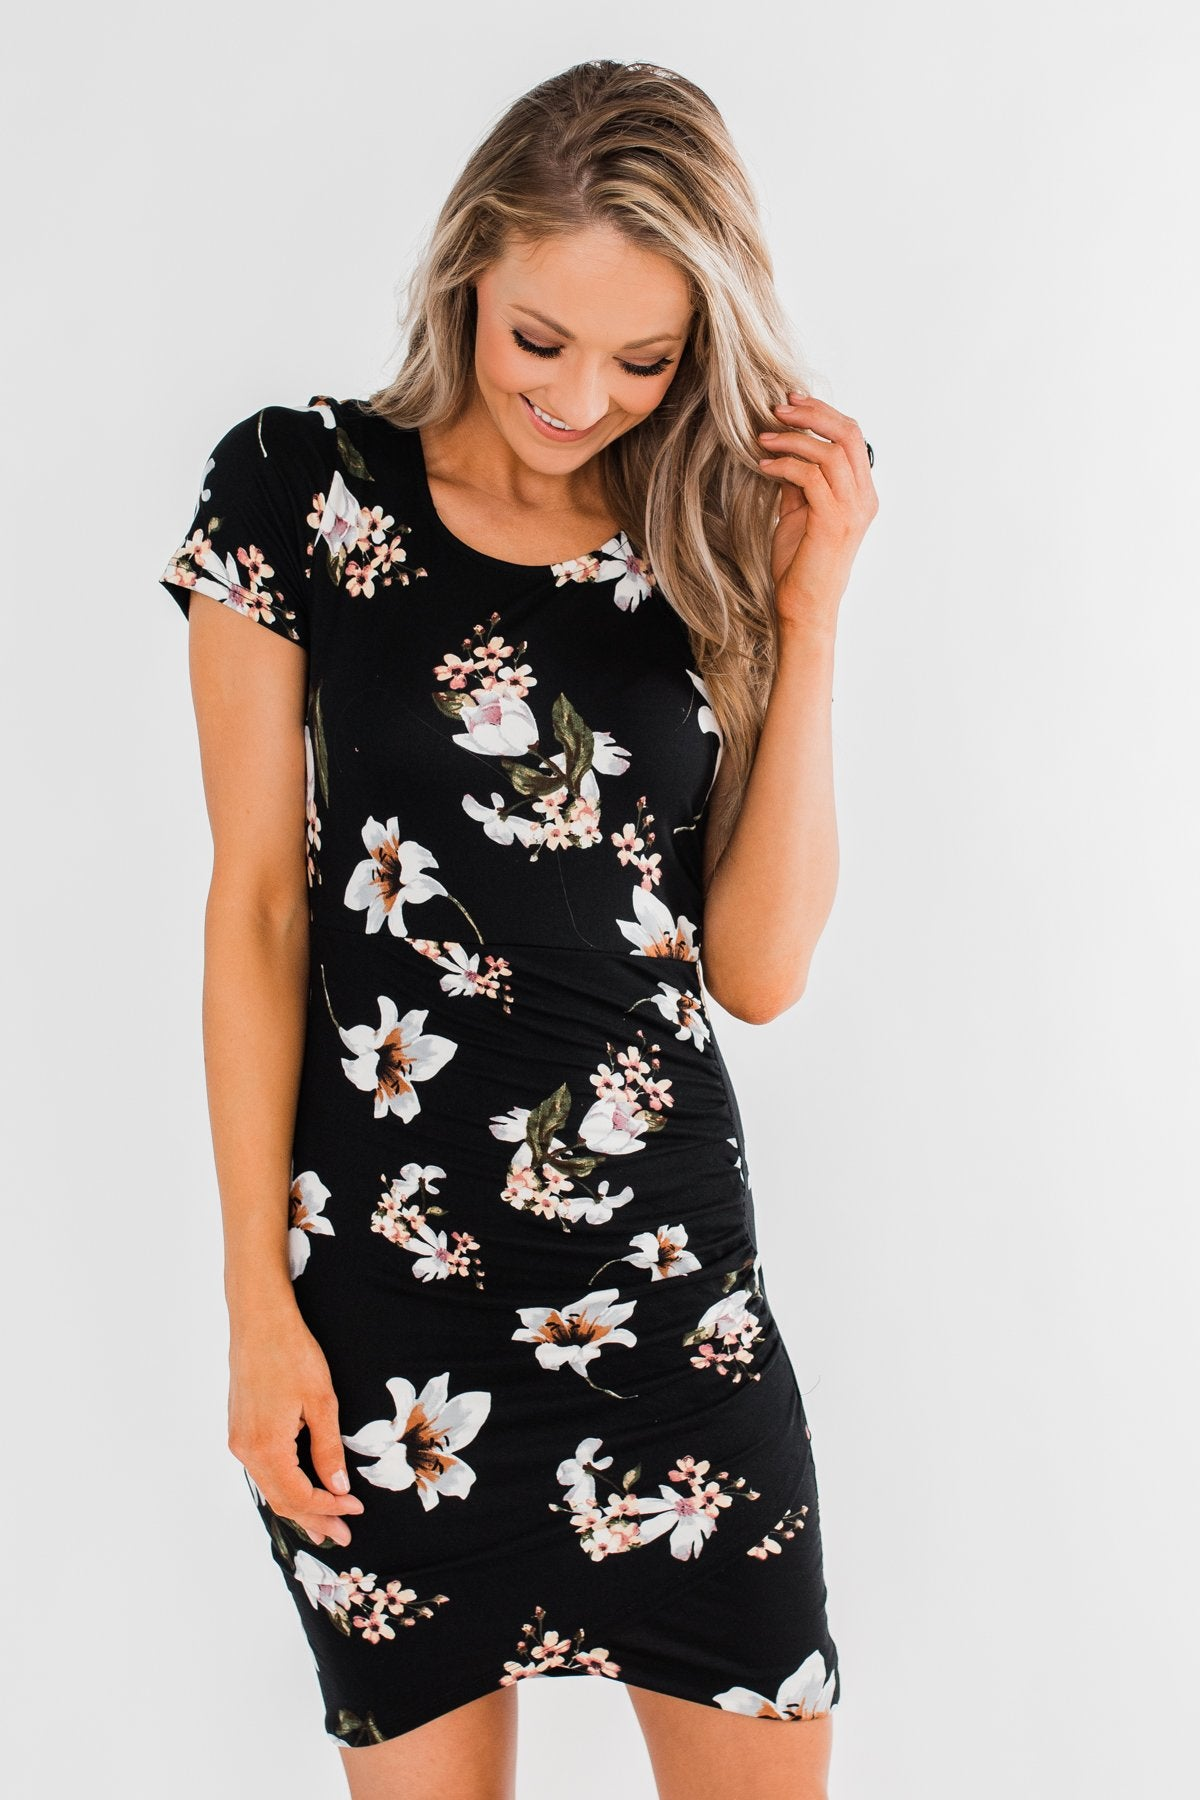 You're Beautiful Floral Dress- Black